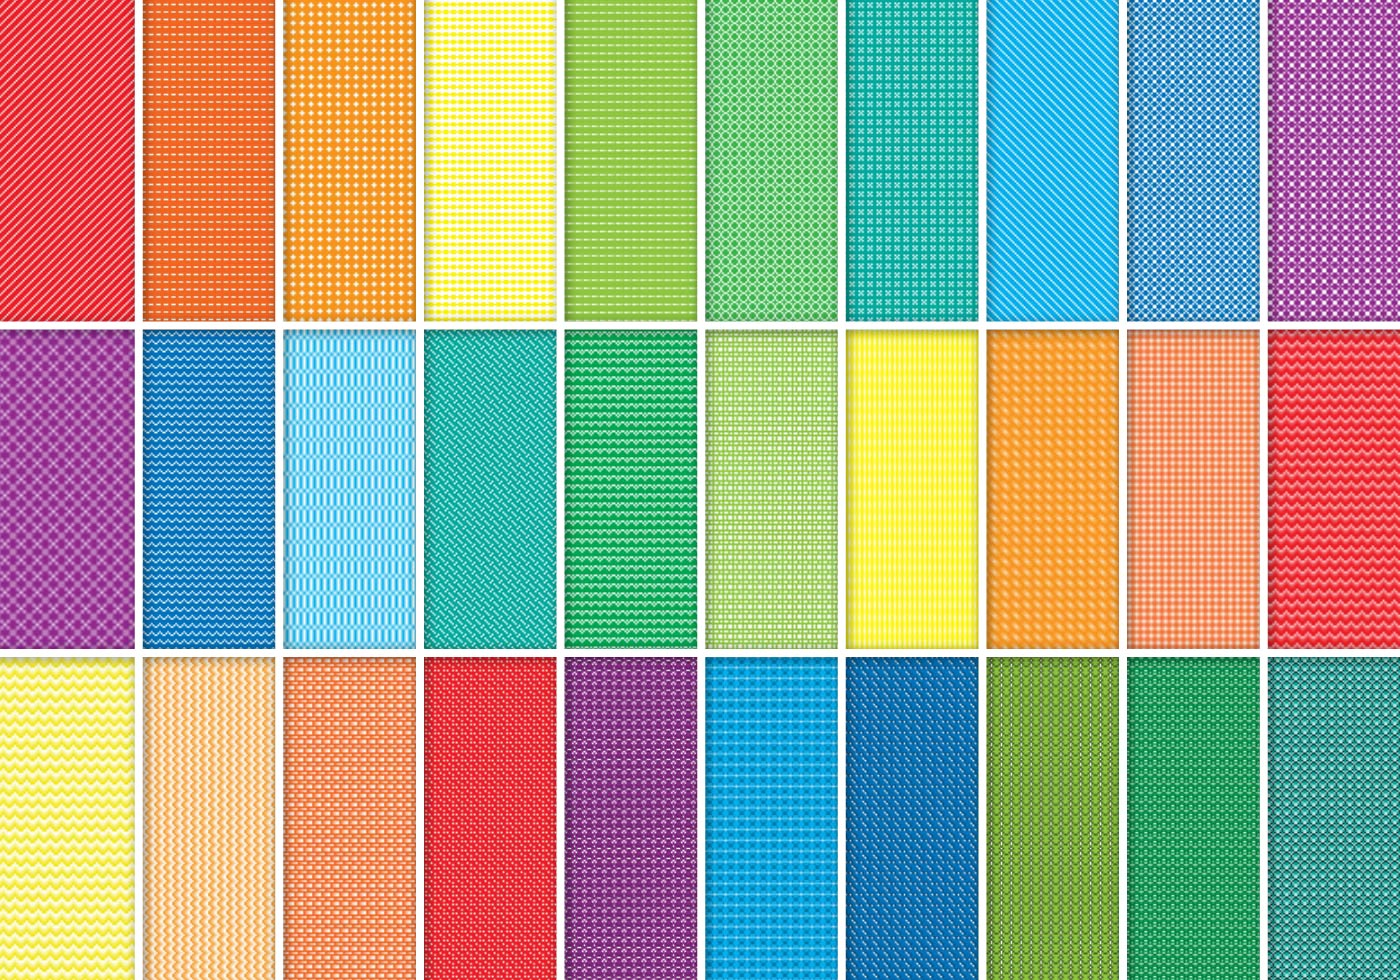 Background Pixel Patterns Free Photoshop Patterns At